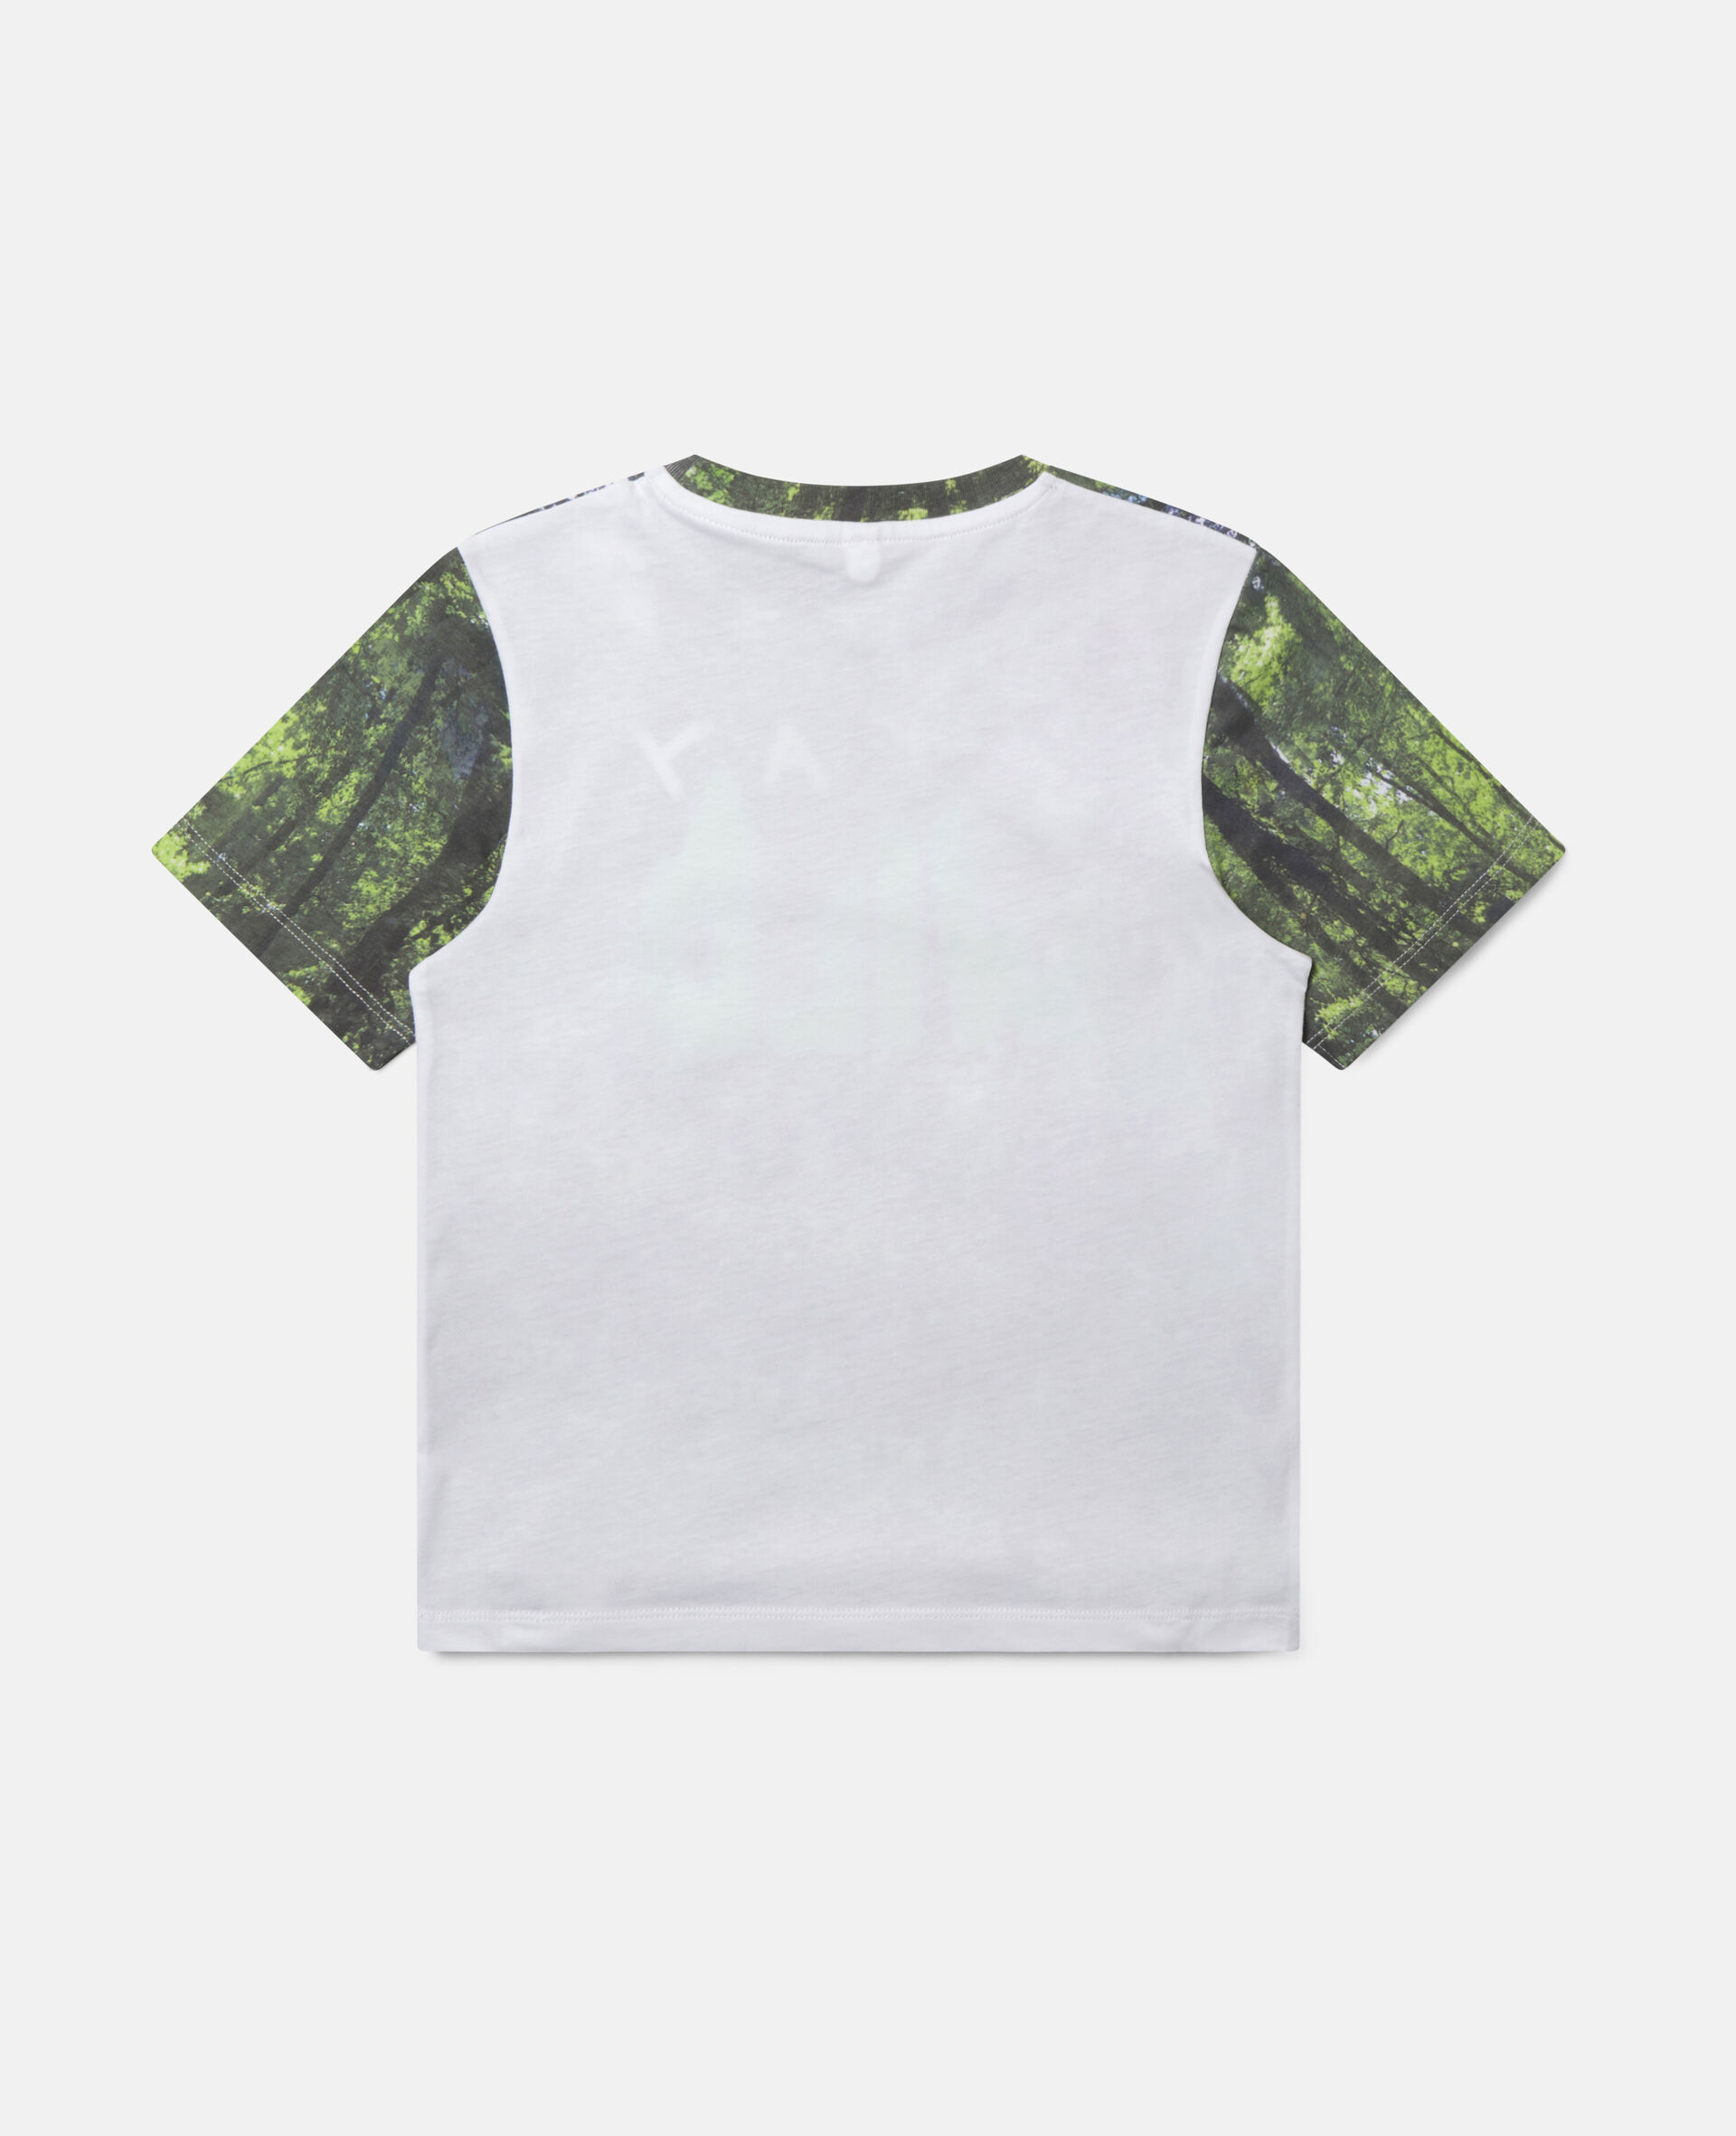 'Stay Wild' Forest Cotton T-shirt-Multicolour-large image number 3